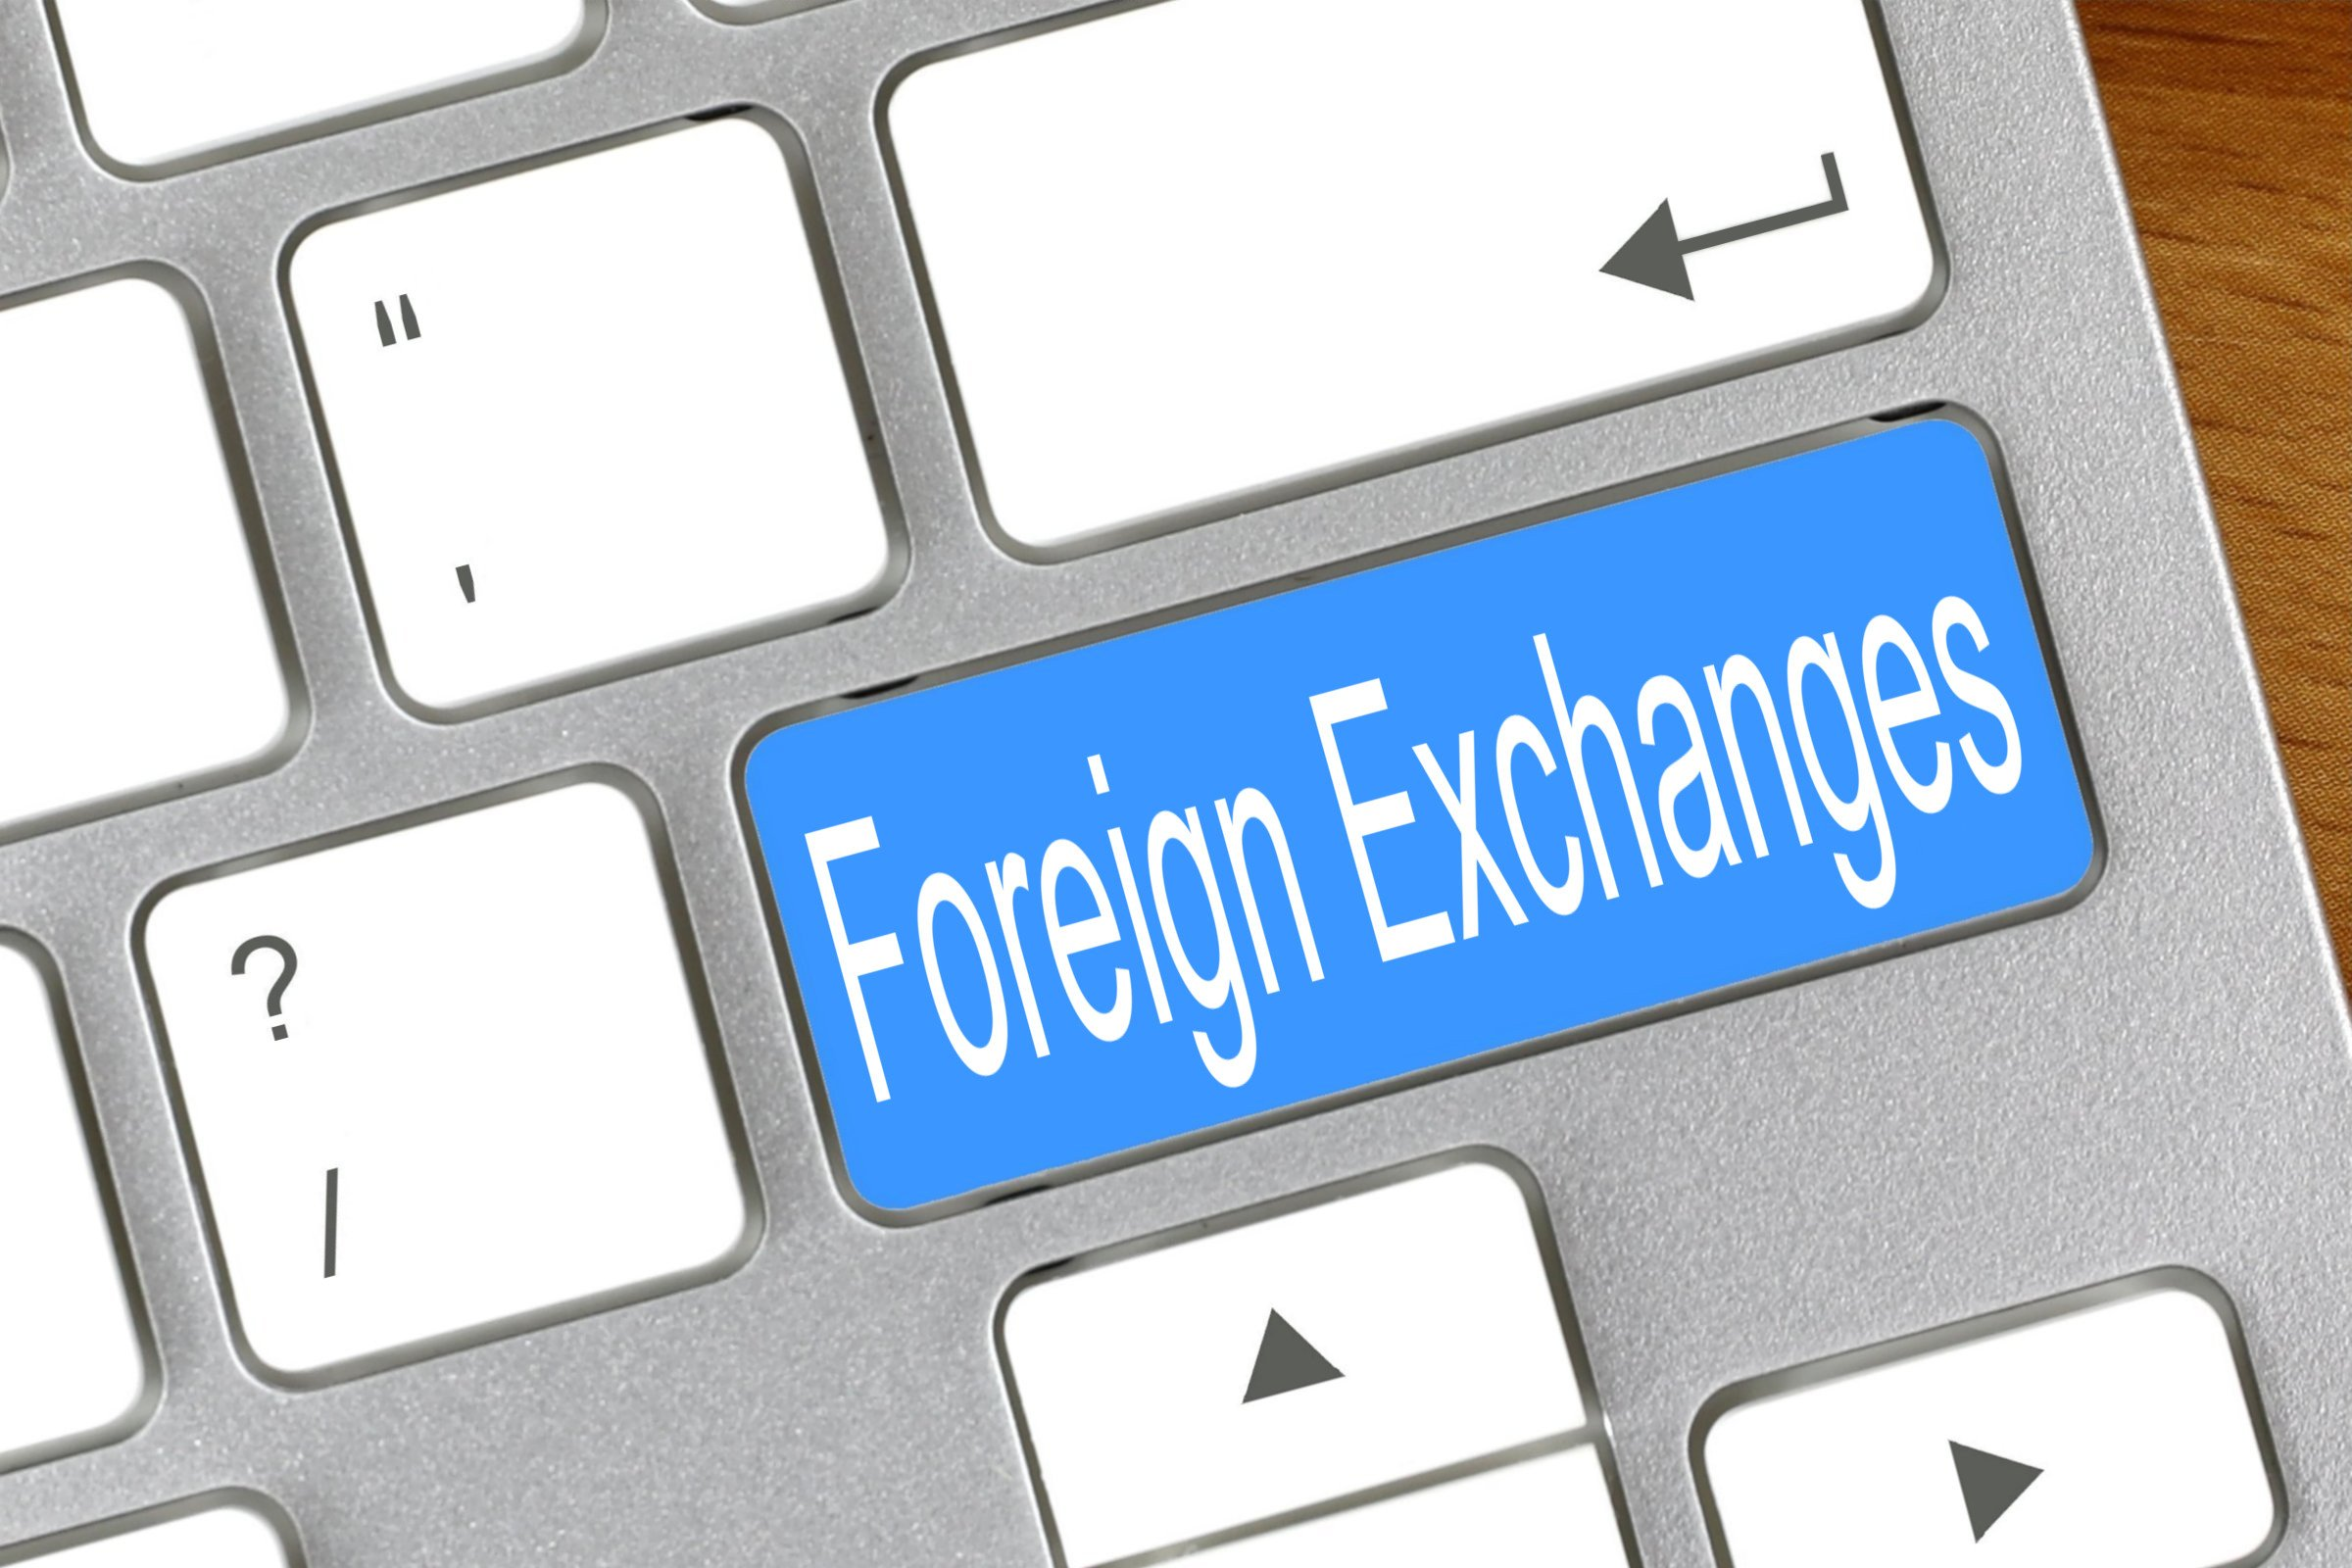 Foreign Exchanges